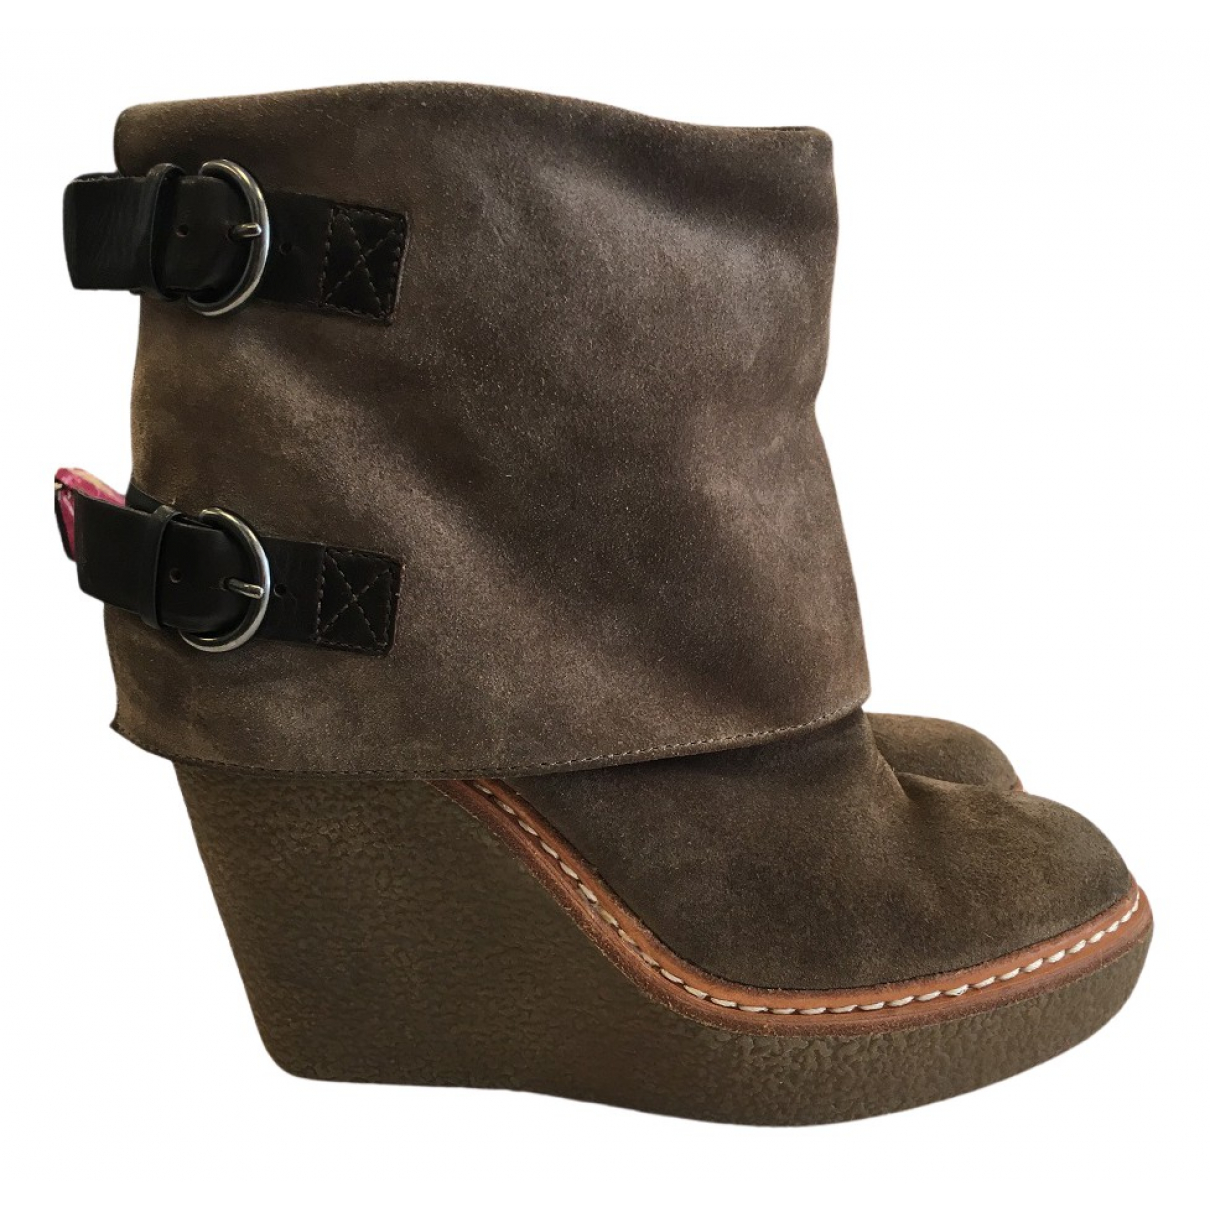 Ash N Brown Suede Ankle boots for Women 37 EU